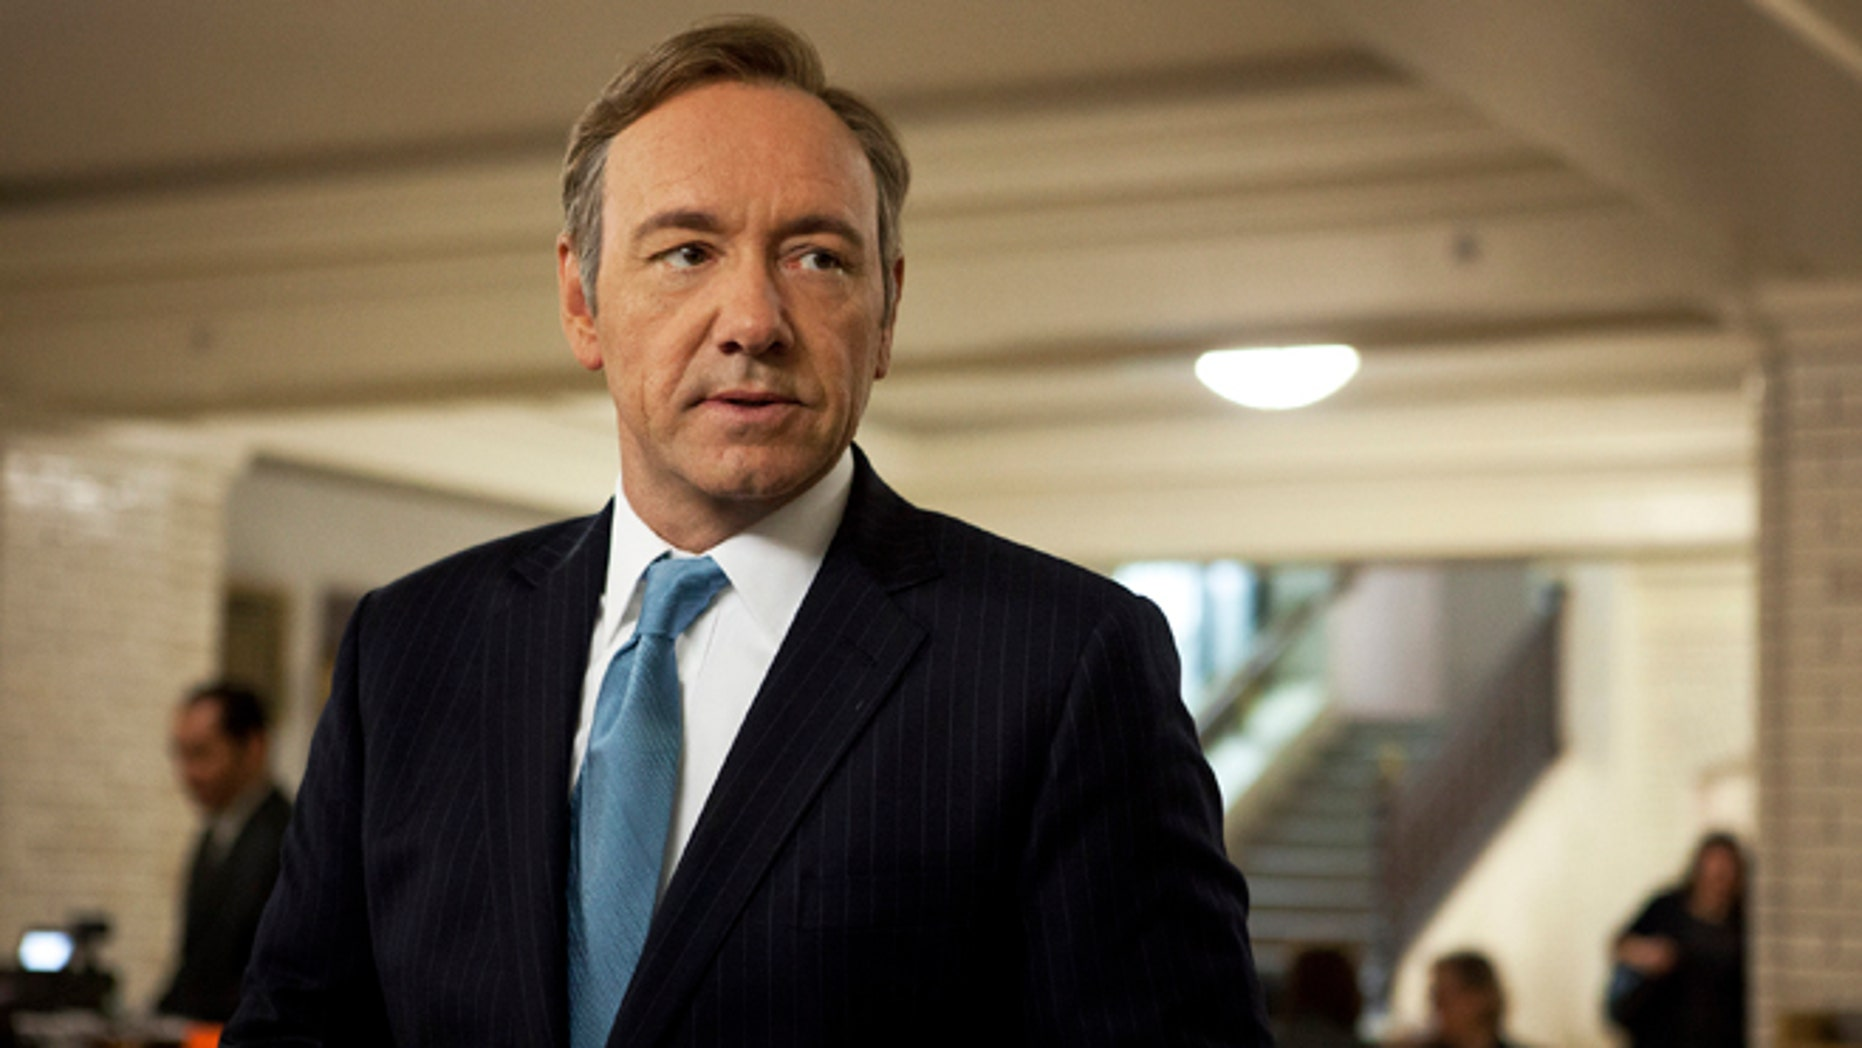 """Kevin Spacey as U.S. Congressman Frank Underwood in a scene from the Netflix original series, """"House of Cards."""""""